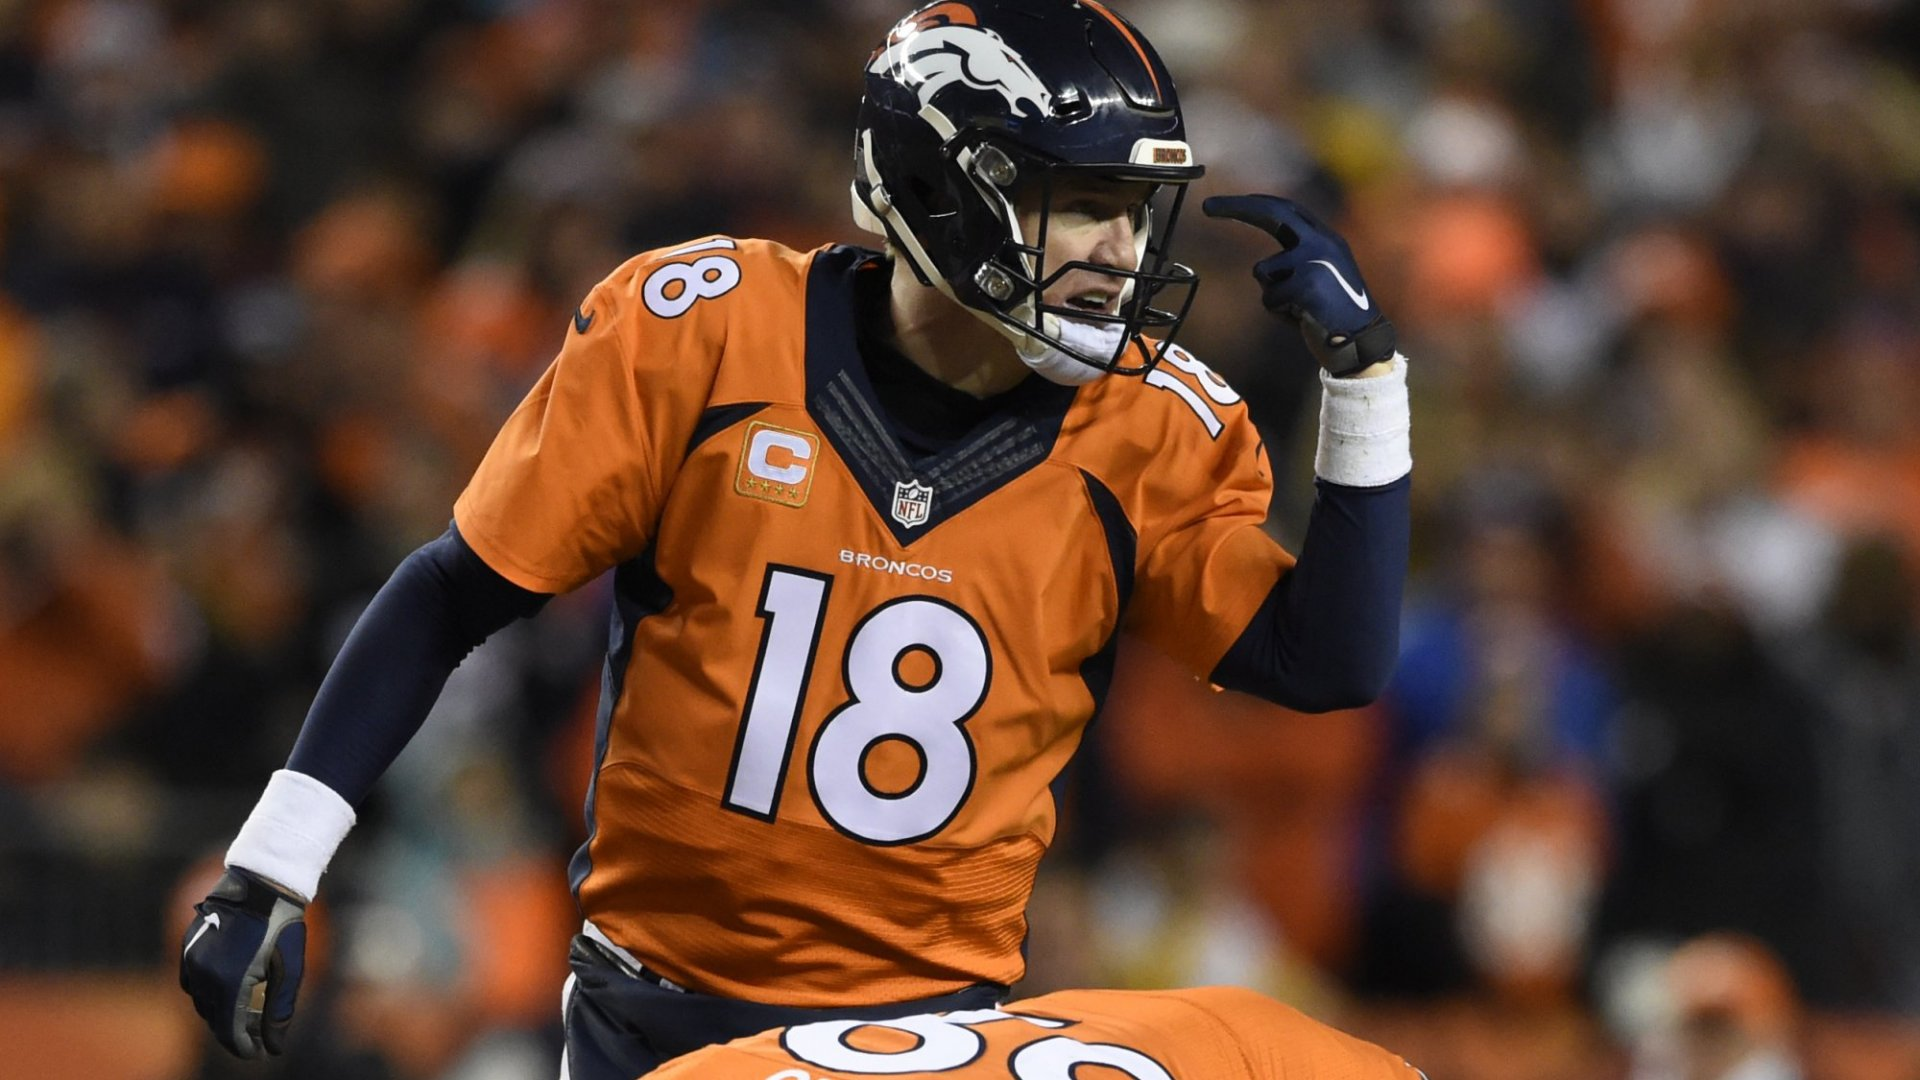 Peyton Manning and the Art of Compromise